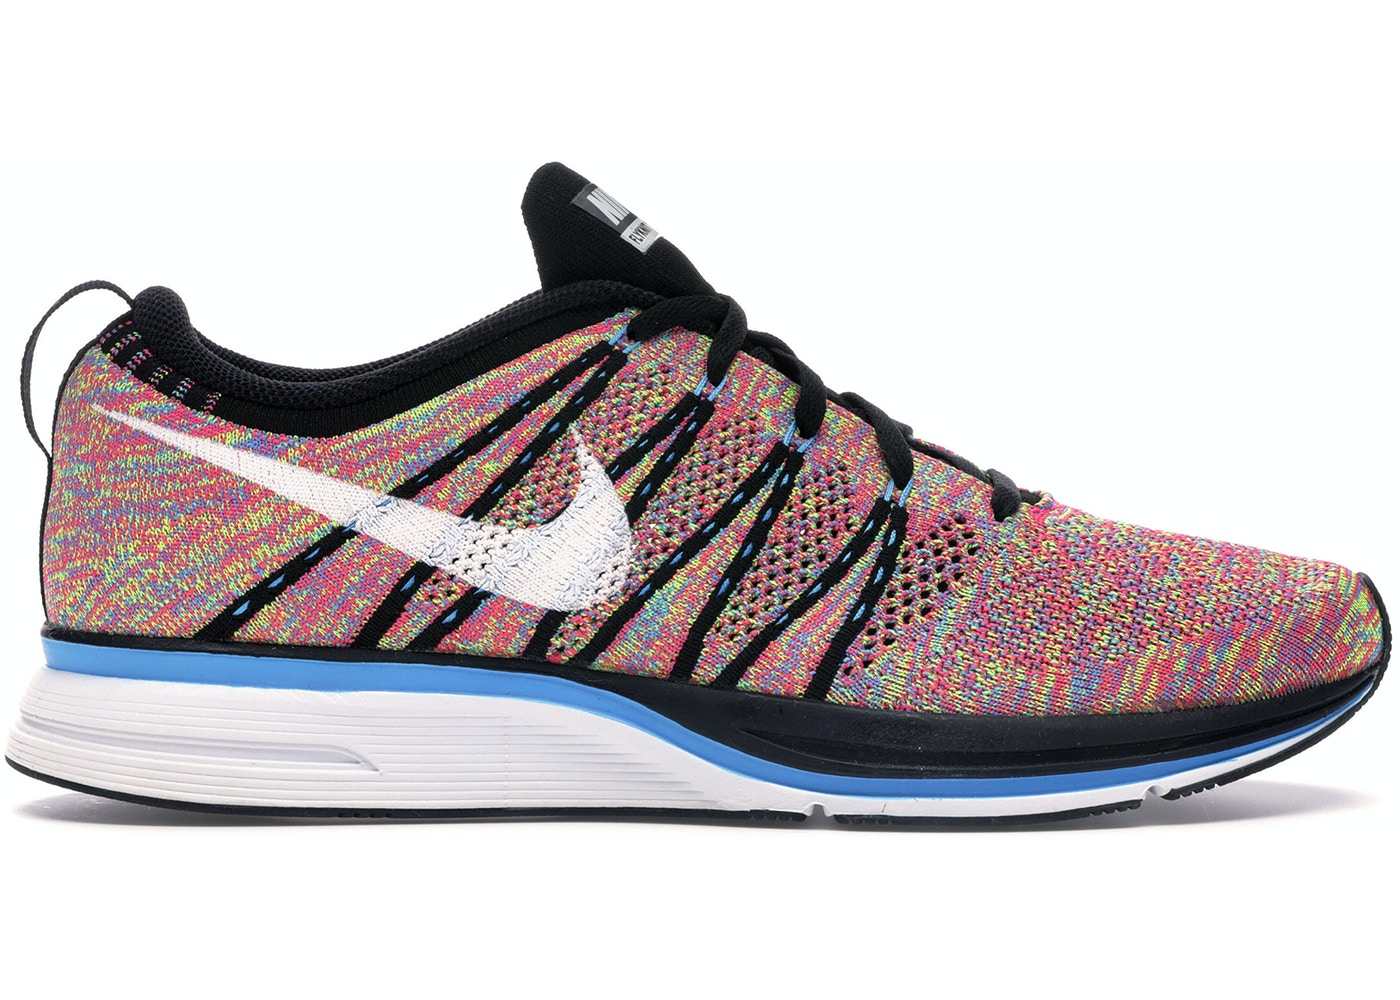 apoyo juicio Rechazar  Nike Flyknit Trainer Multi-Color - 532984-014